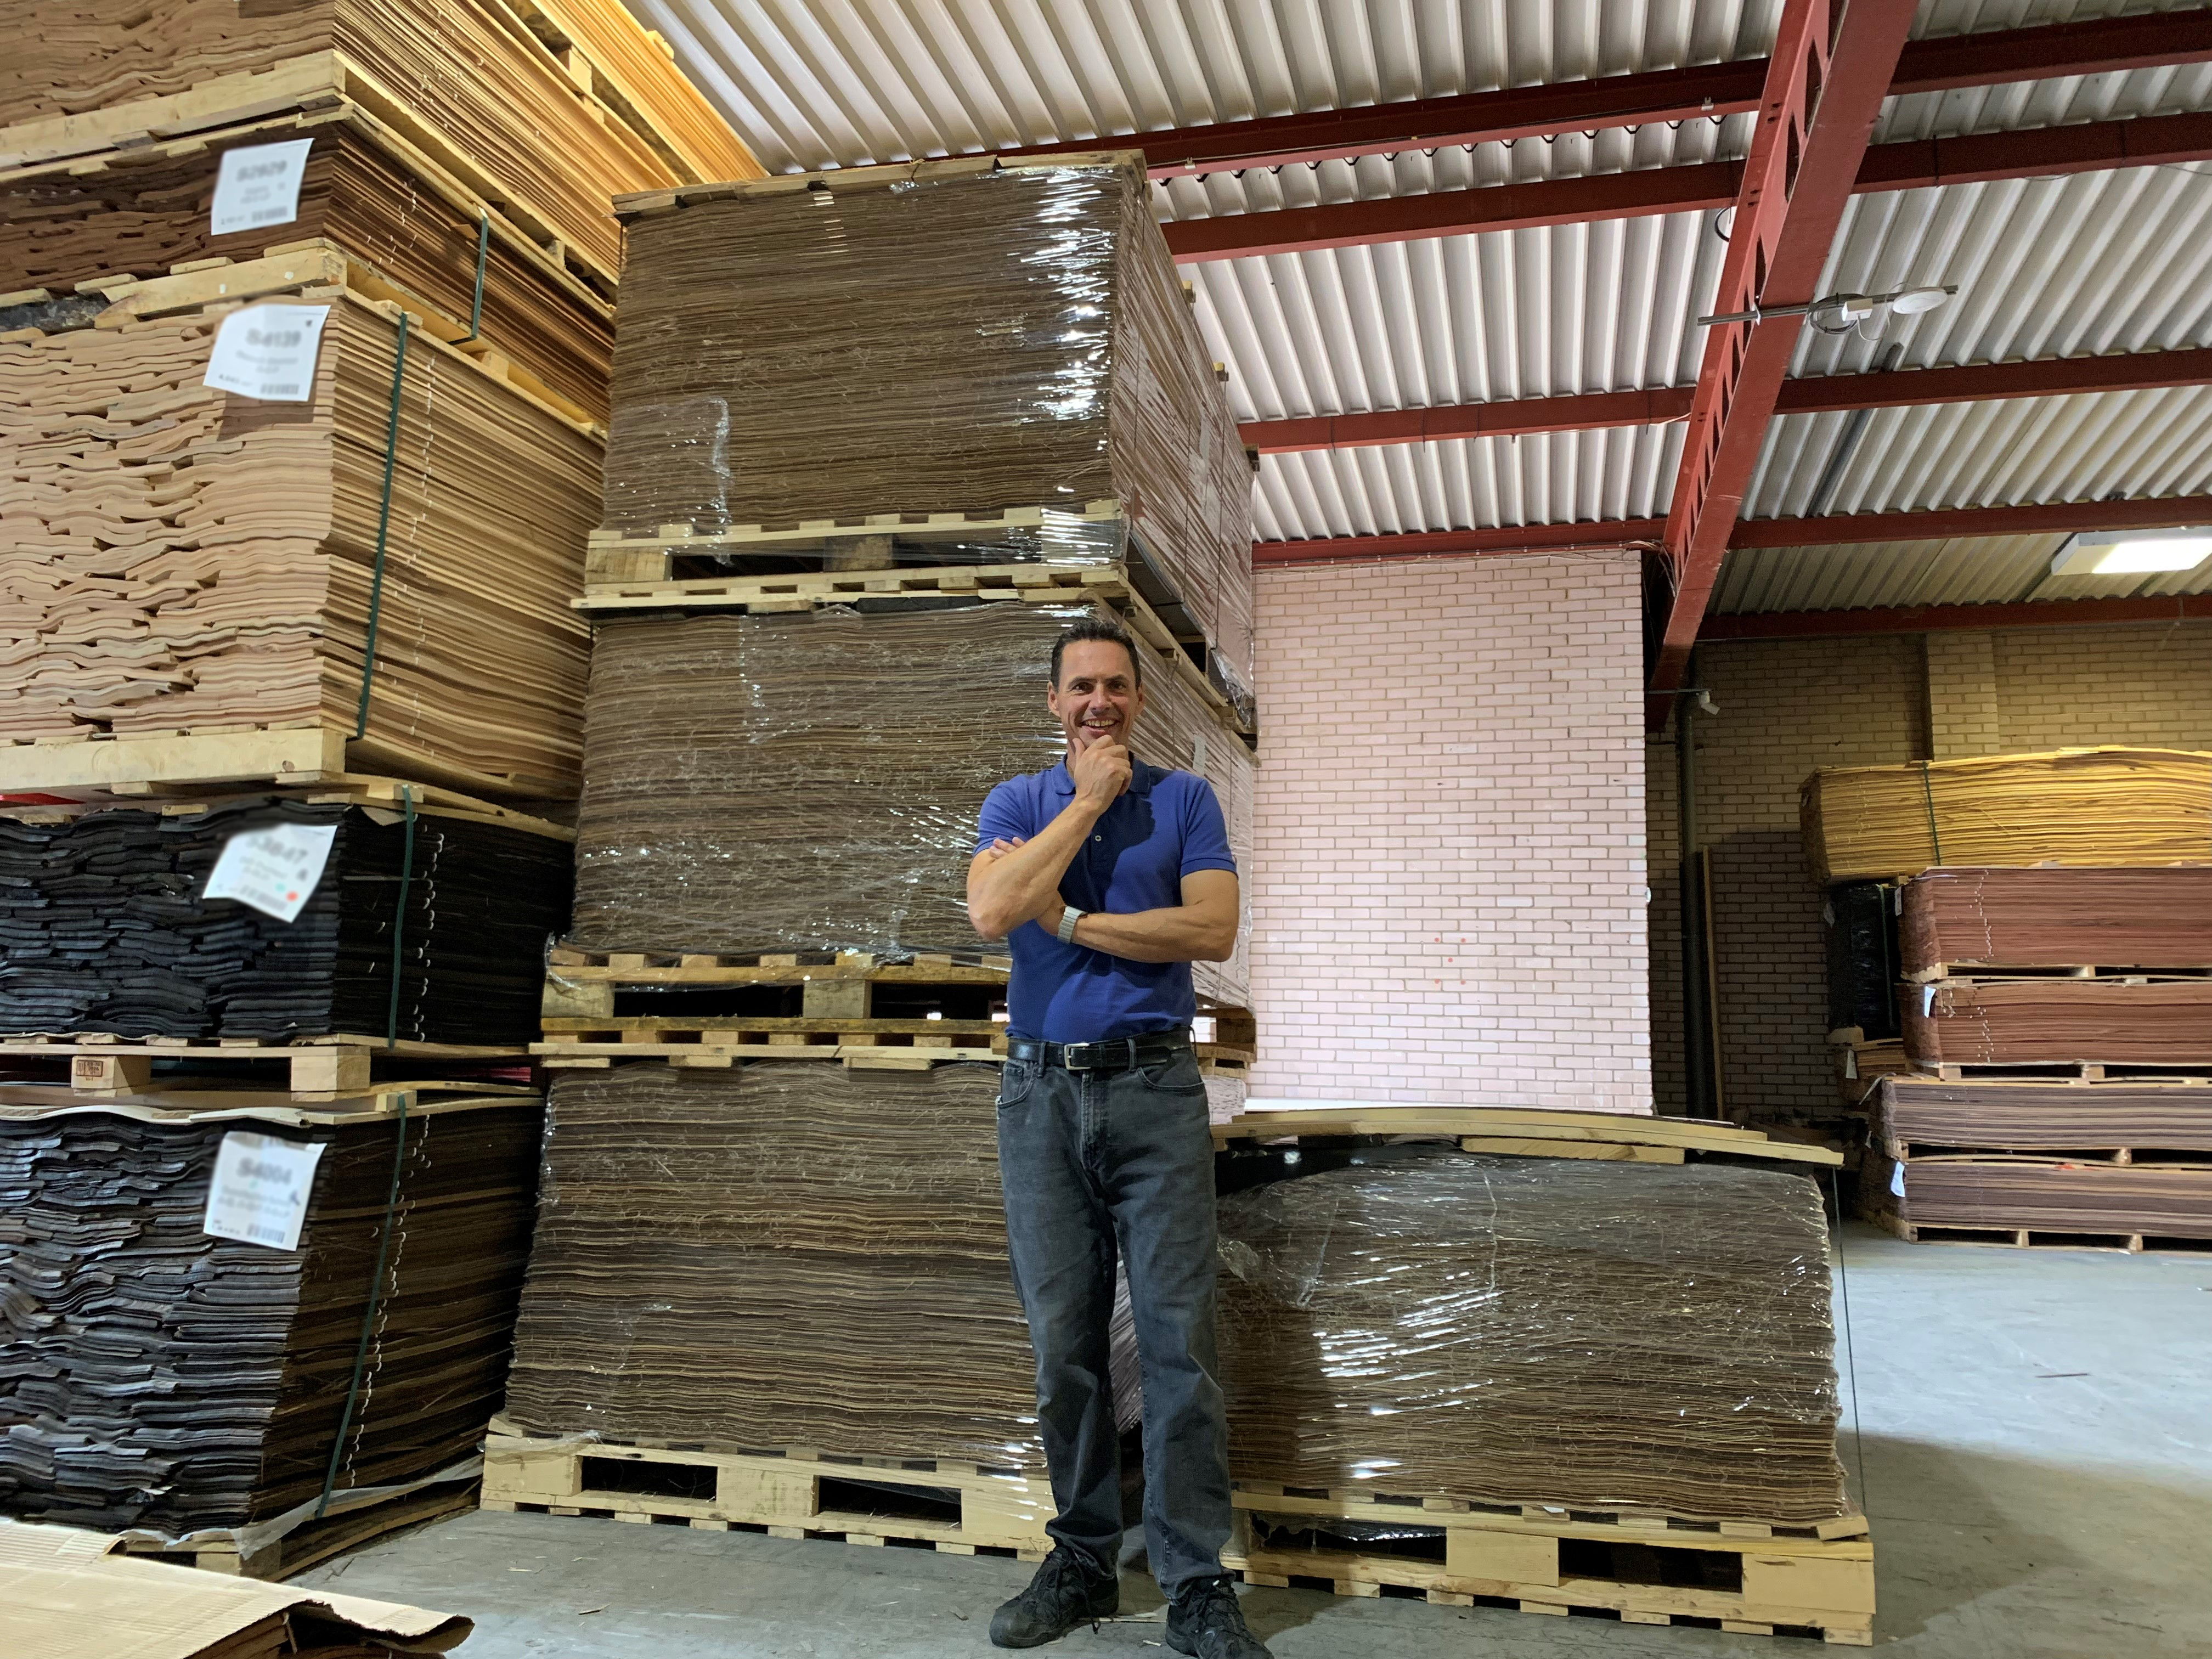 Layons Leaving The Factory on Daily Basis with Director Alex Richards